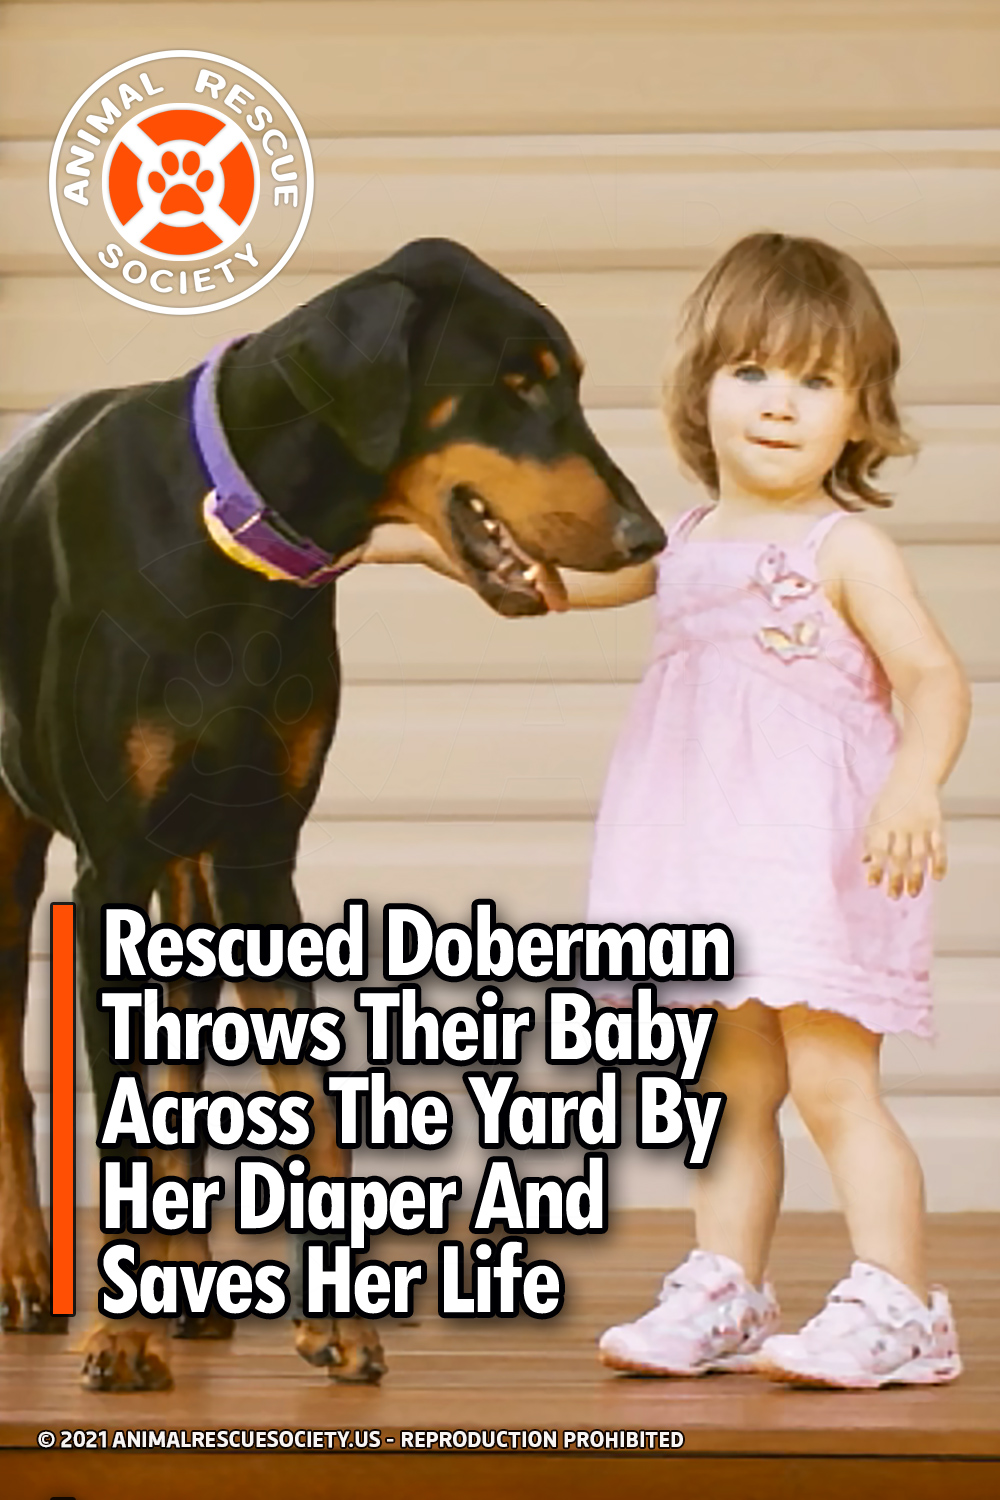 Rescued Doberman Throws Their Baby Across The Yard By Her Diaper And Saves Her Life